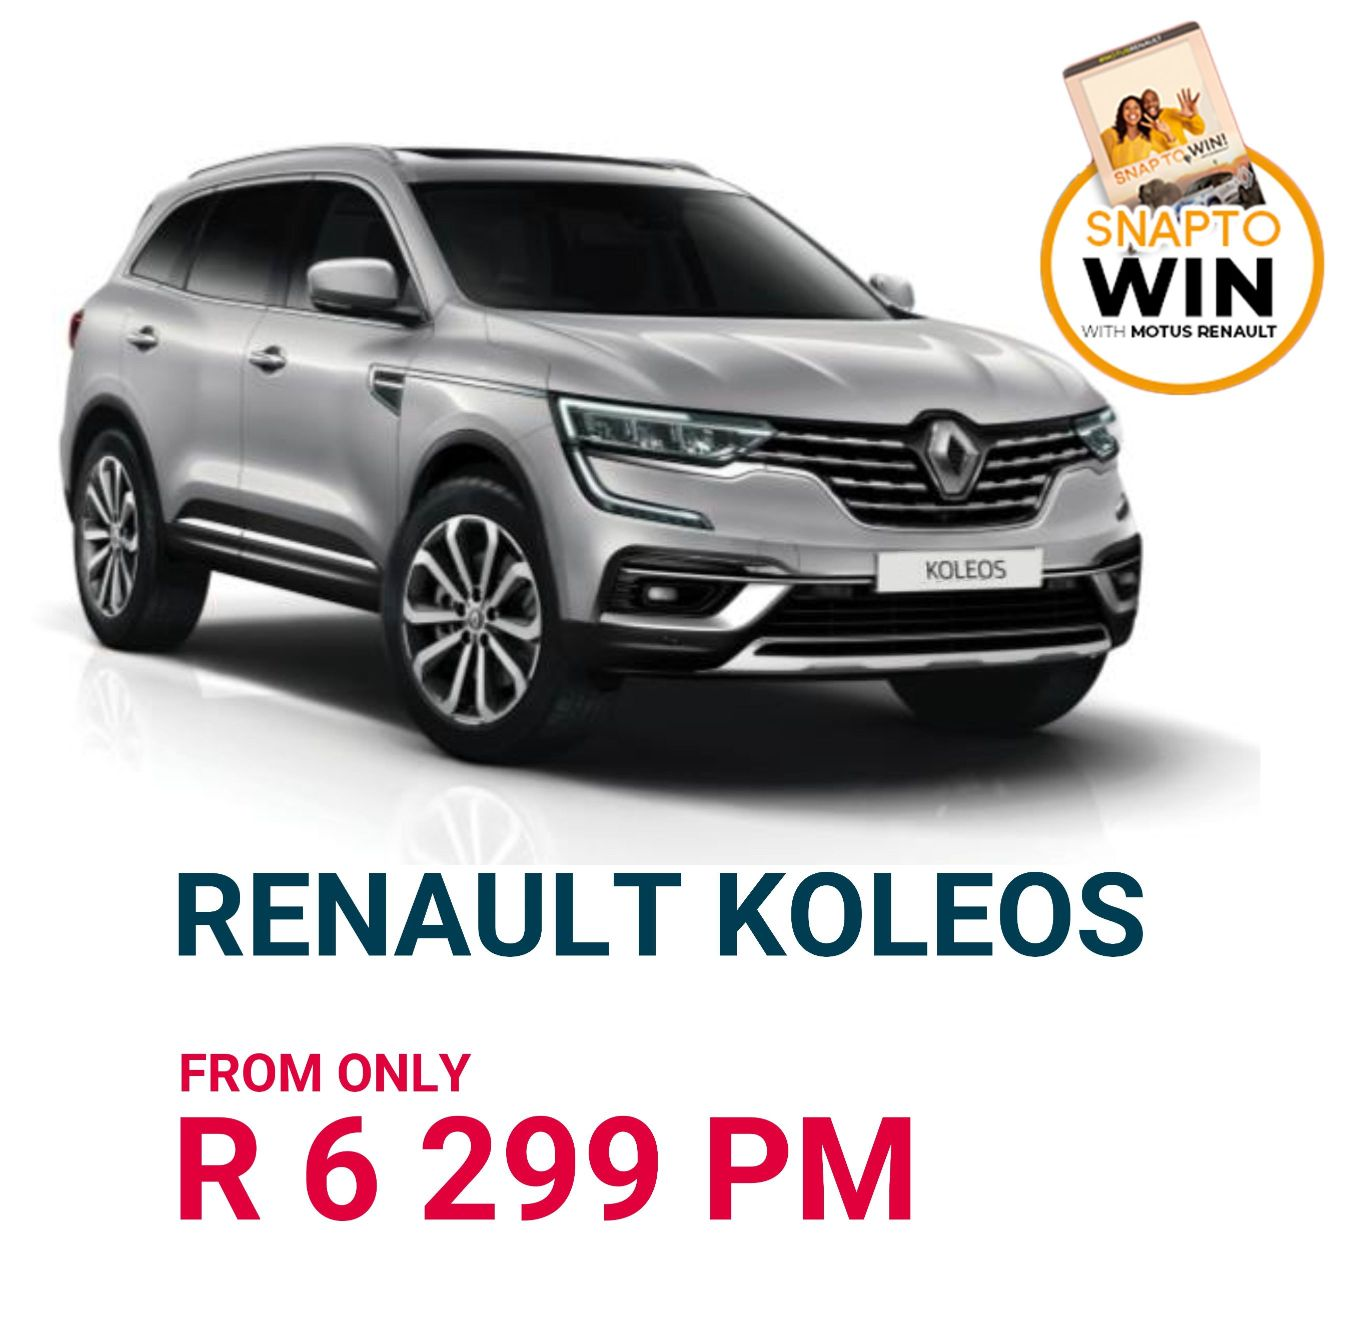 renault-koleos-from-only-r6-299pm